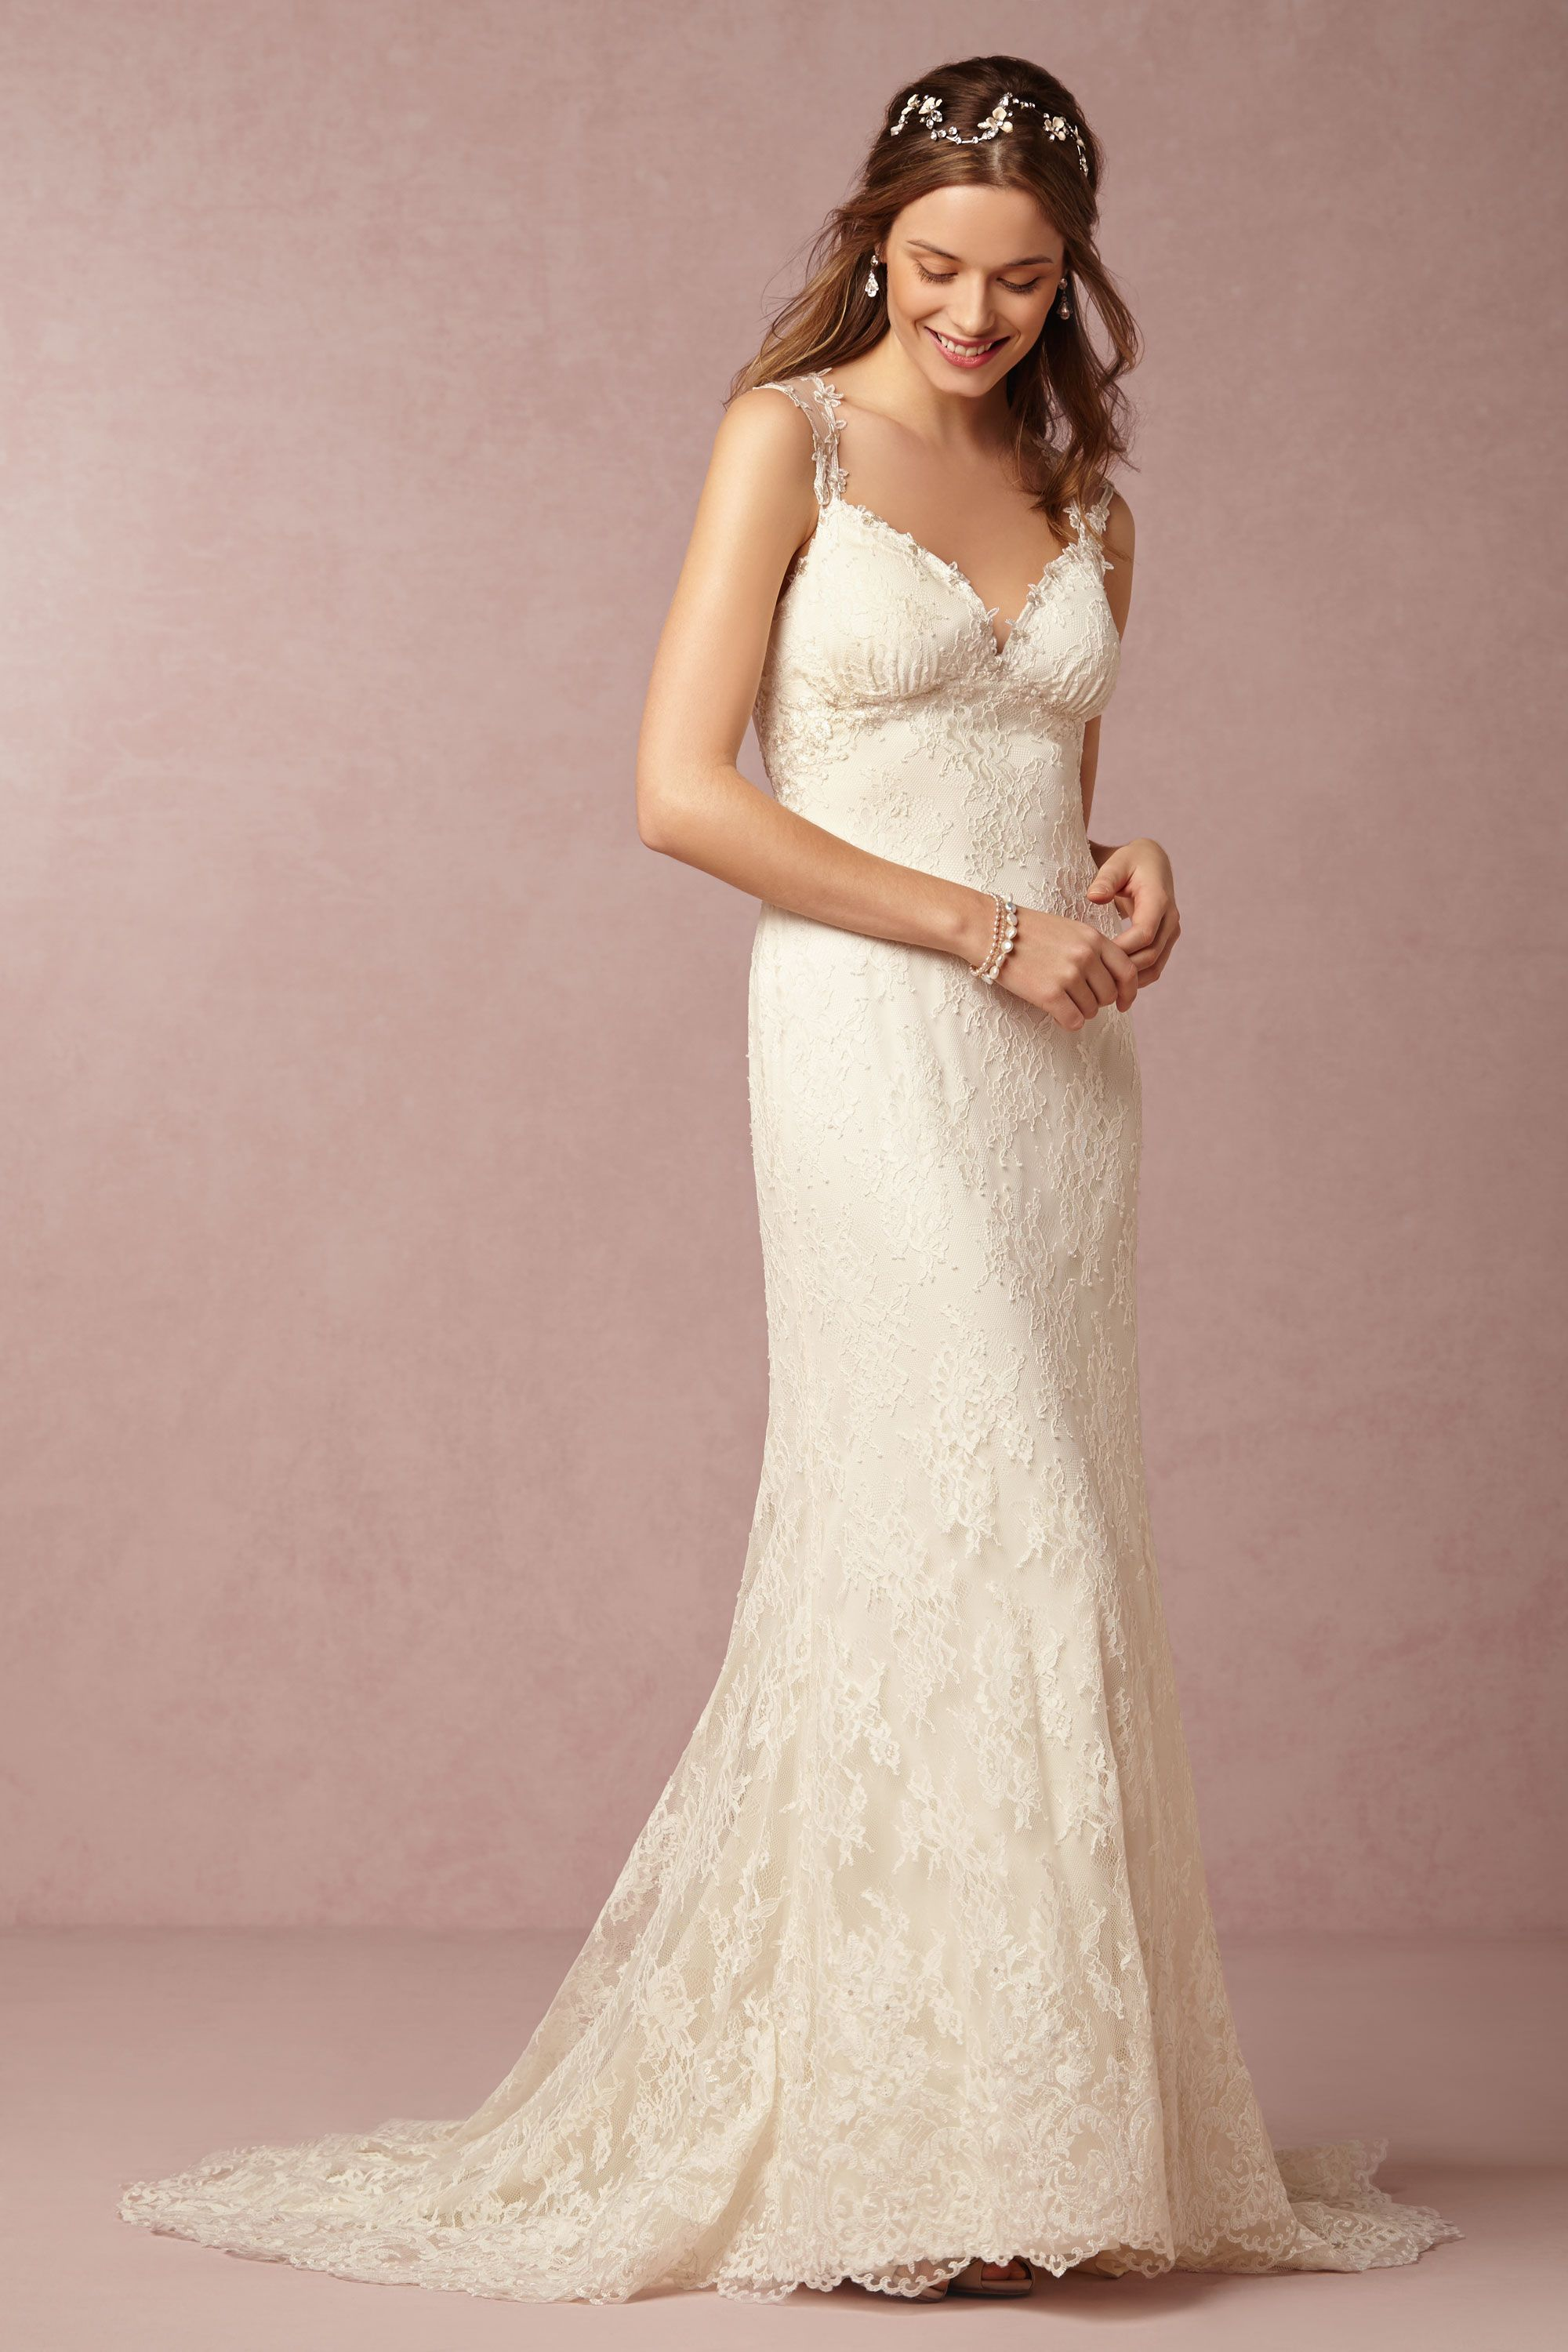 Briar Rose Gown from @BHLDN | wedding | Pinterest